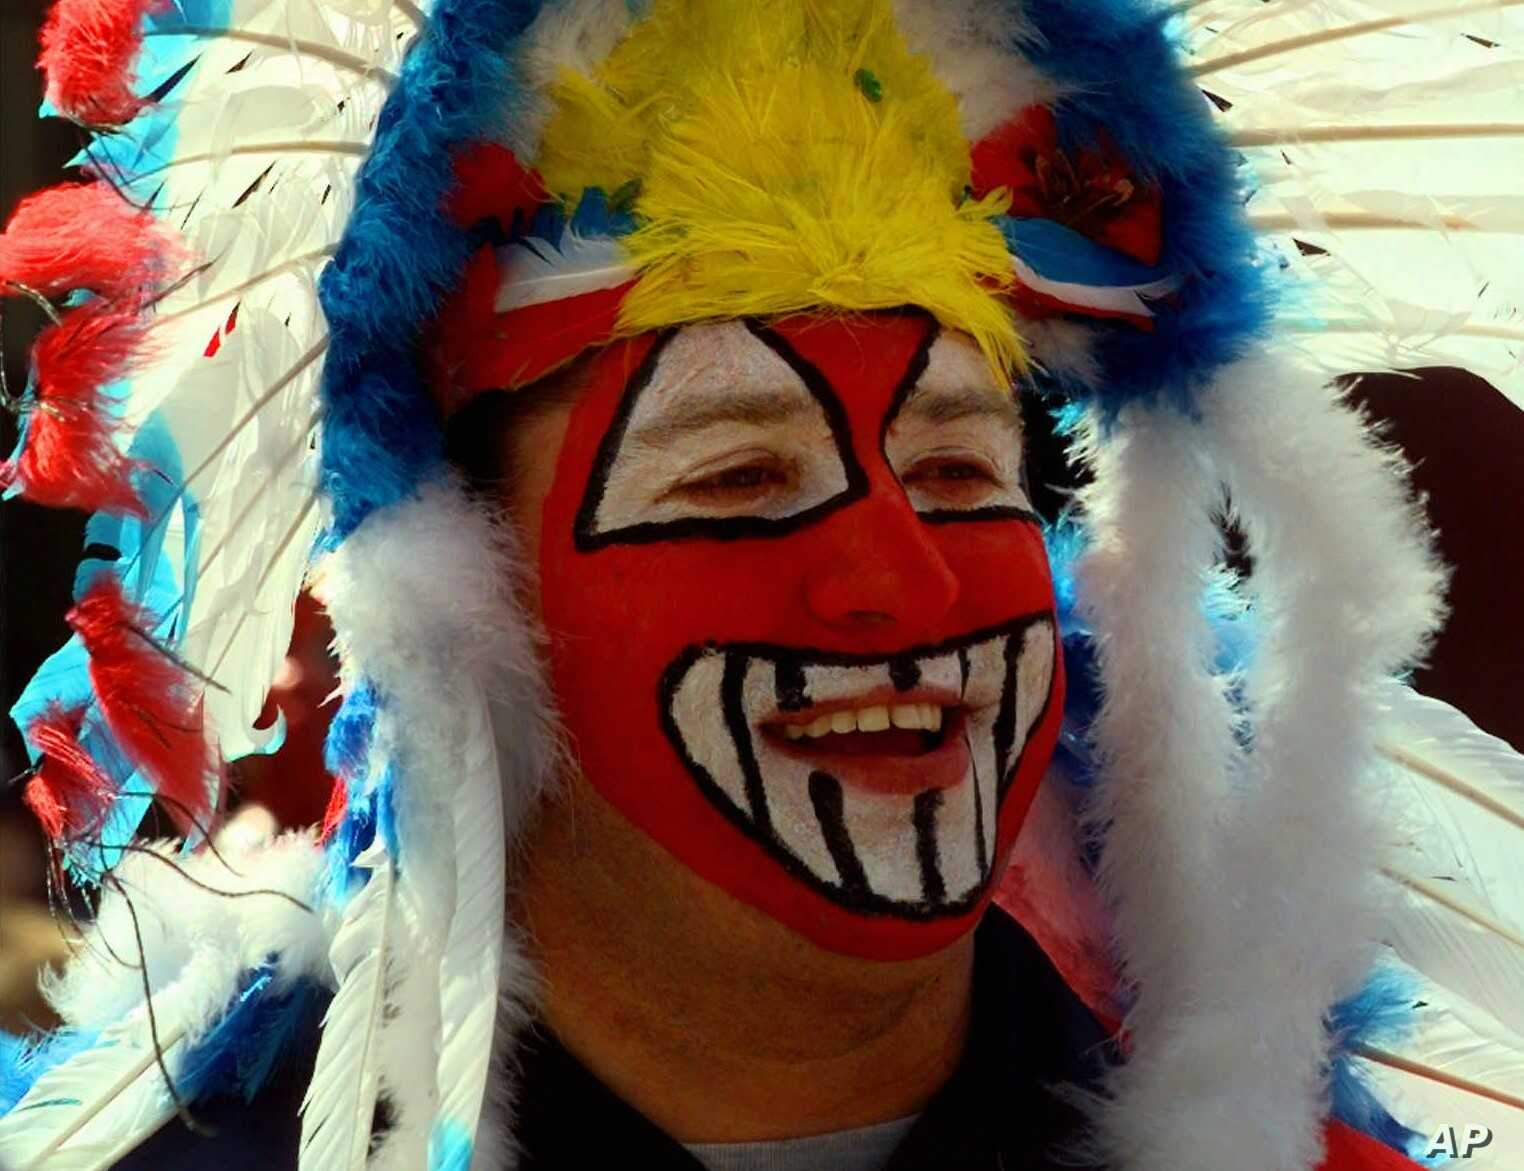 FILE - Mike Margevicus, a fan of the Cleveland Indians Baseball team, waiting to enter Jacobs Field for the team's home opener Friday, April 10, 1998, in Cleveland, Ohio. Nearby demonstrators protested the Indians mascot, Chief Wahoo, as racist.